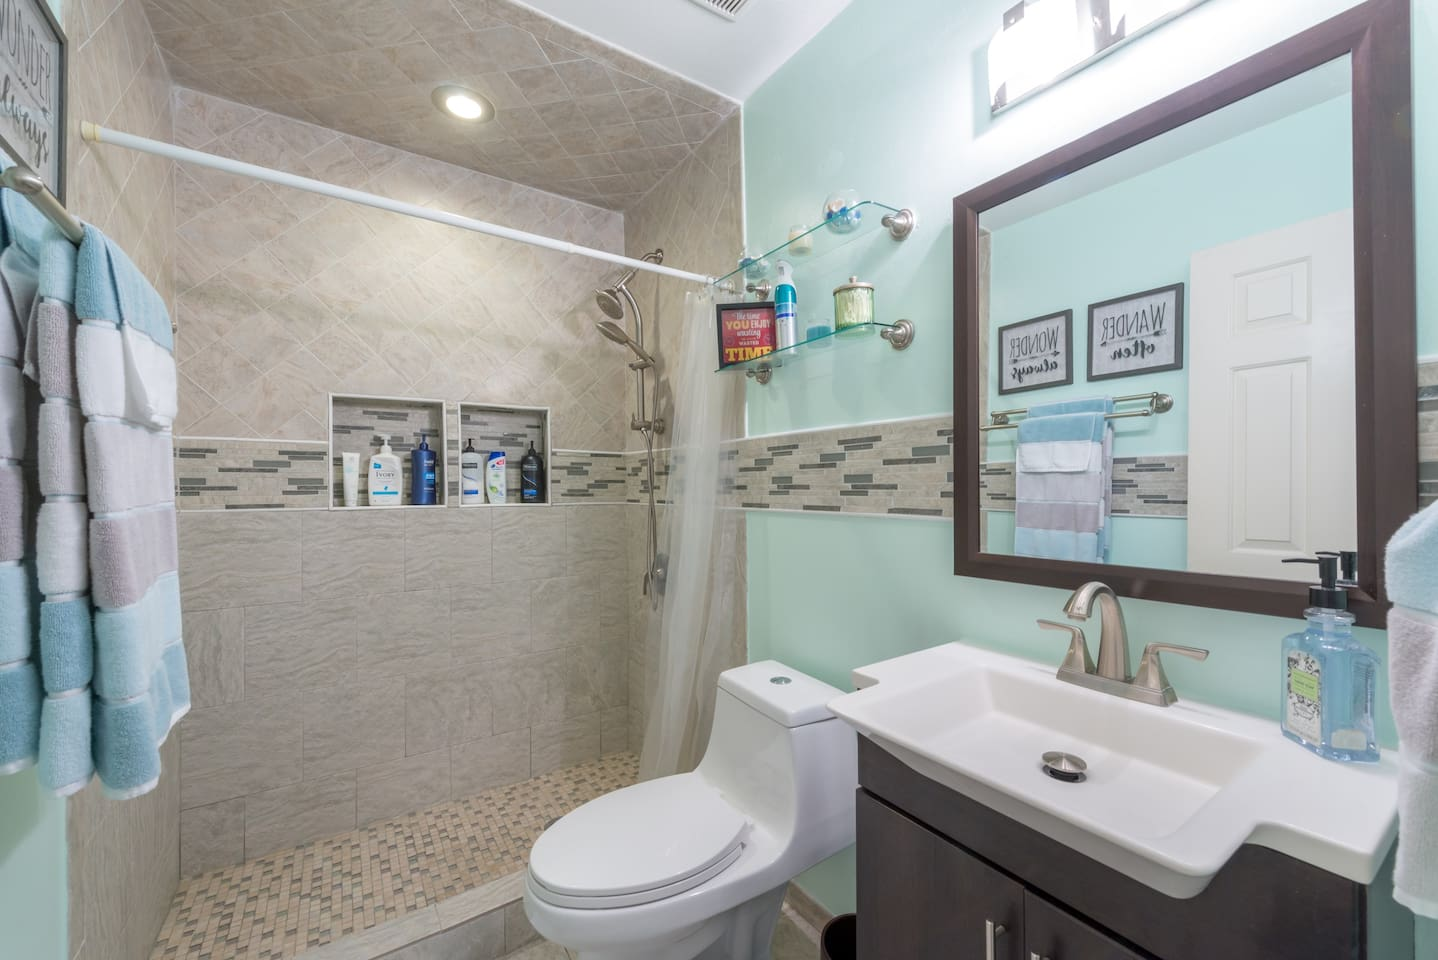 Guest bathroom PRIVATE to guests and not shared (we have bathroom in our master bedroom)